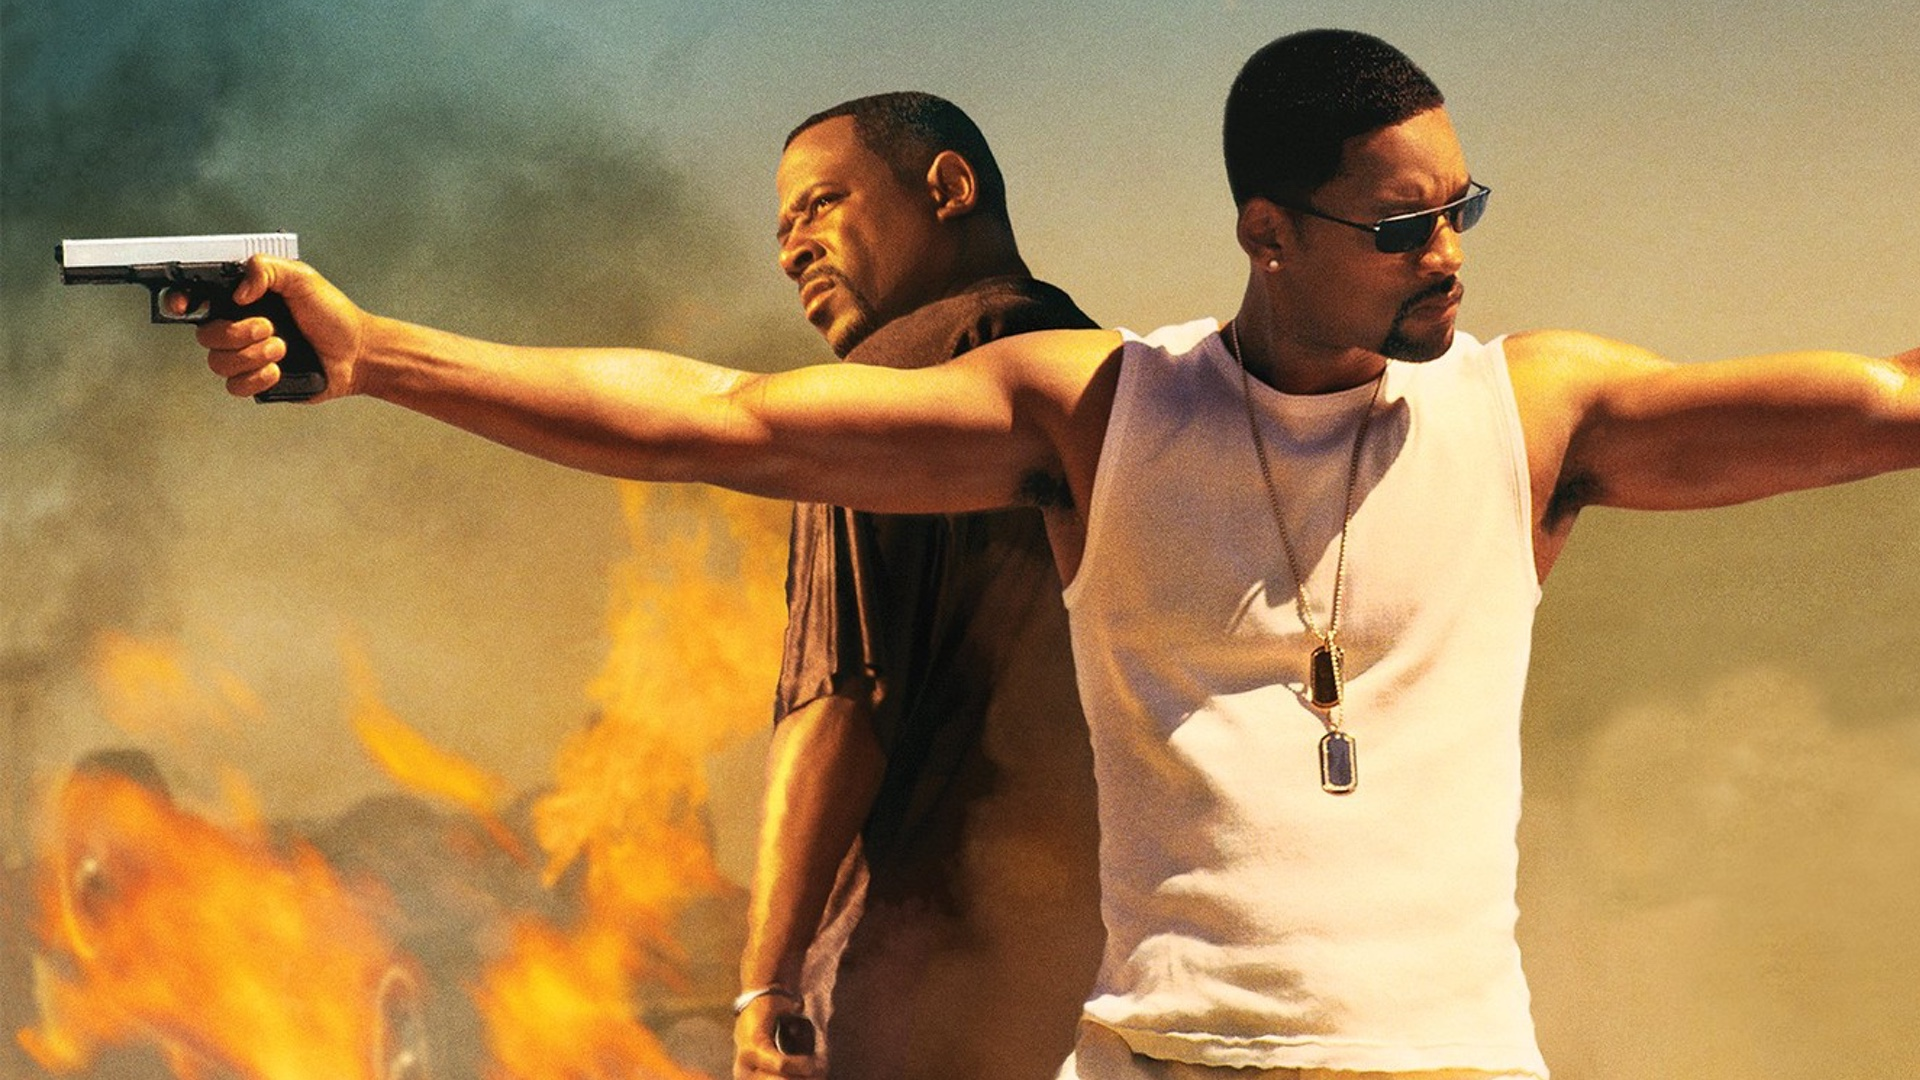 Bad Boys 4 Release Date confirmed after 'Bad Boys for Life' Record Box-office Opening